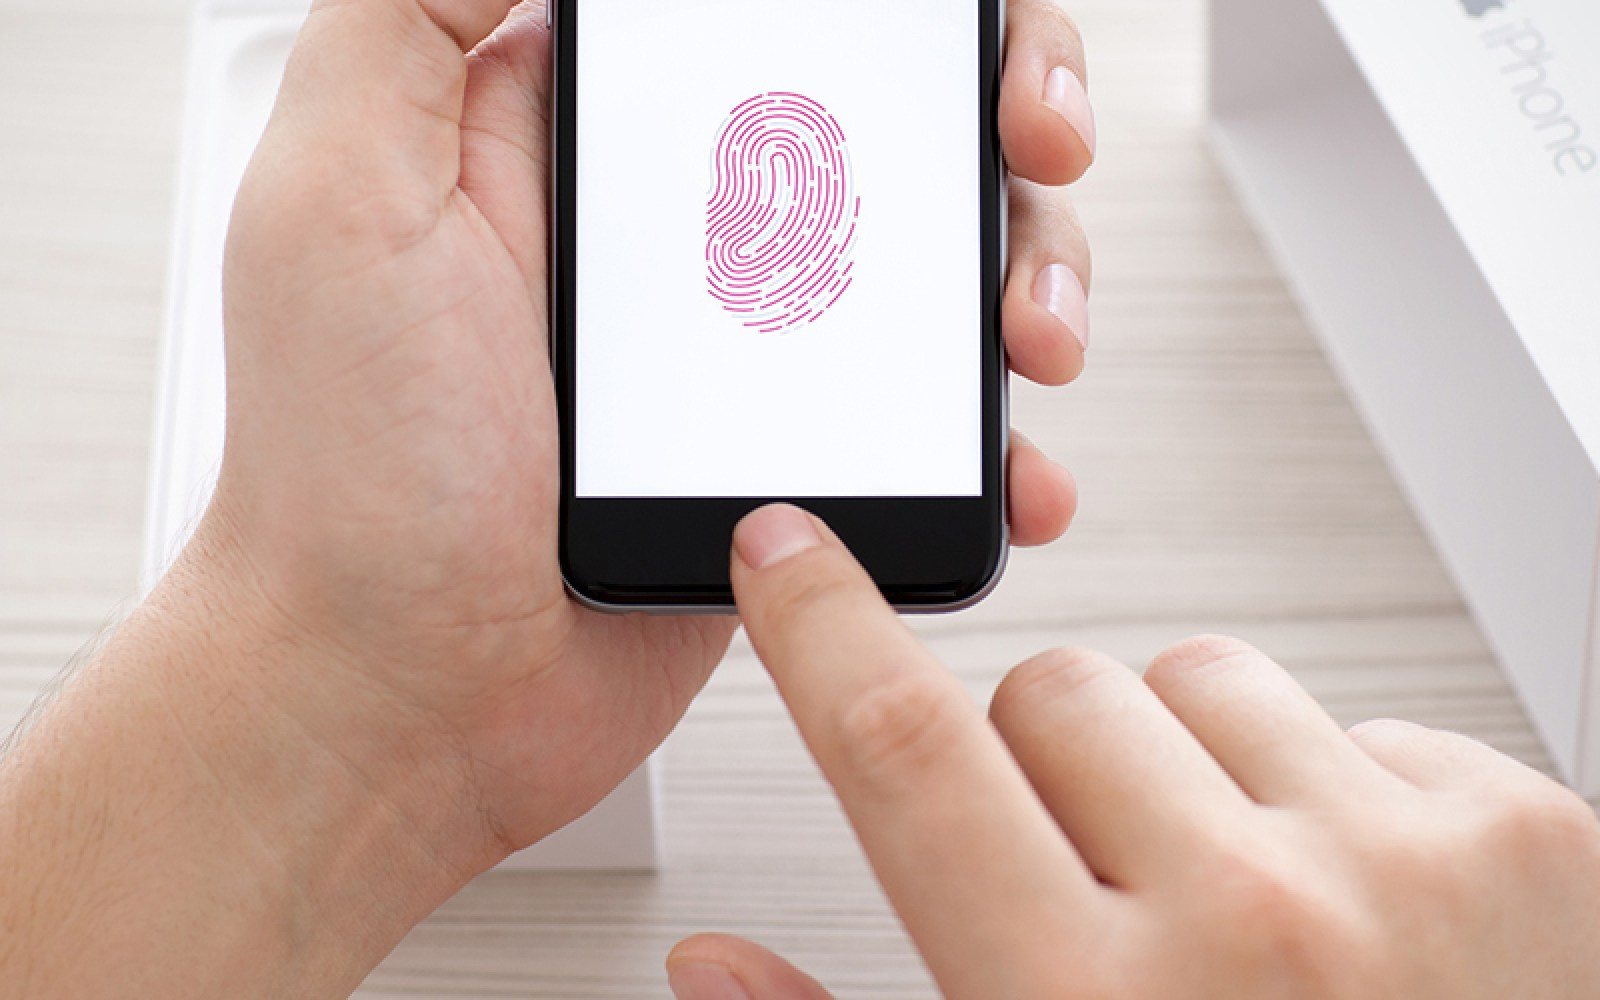 FBI granted federal court warrant forcing suspect to unlock iPhone using Touch ID